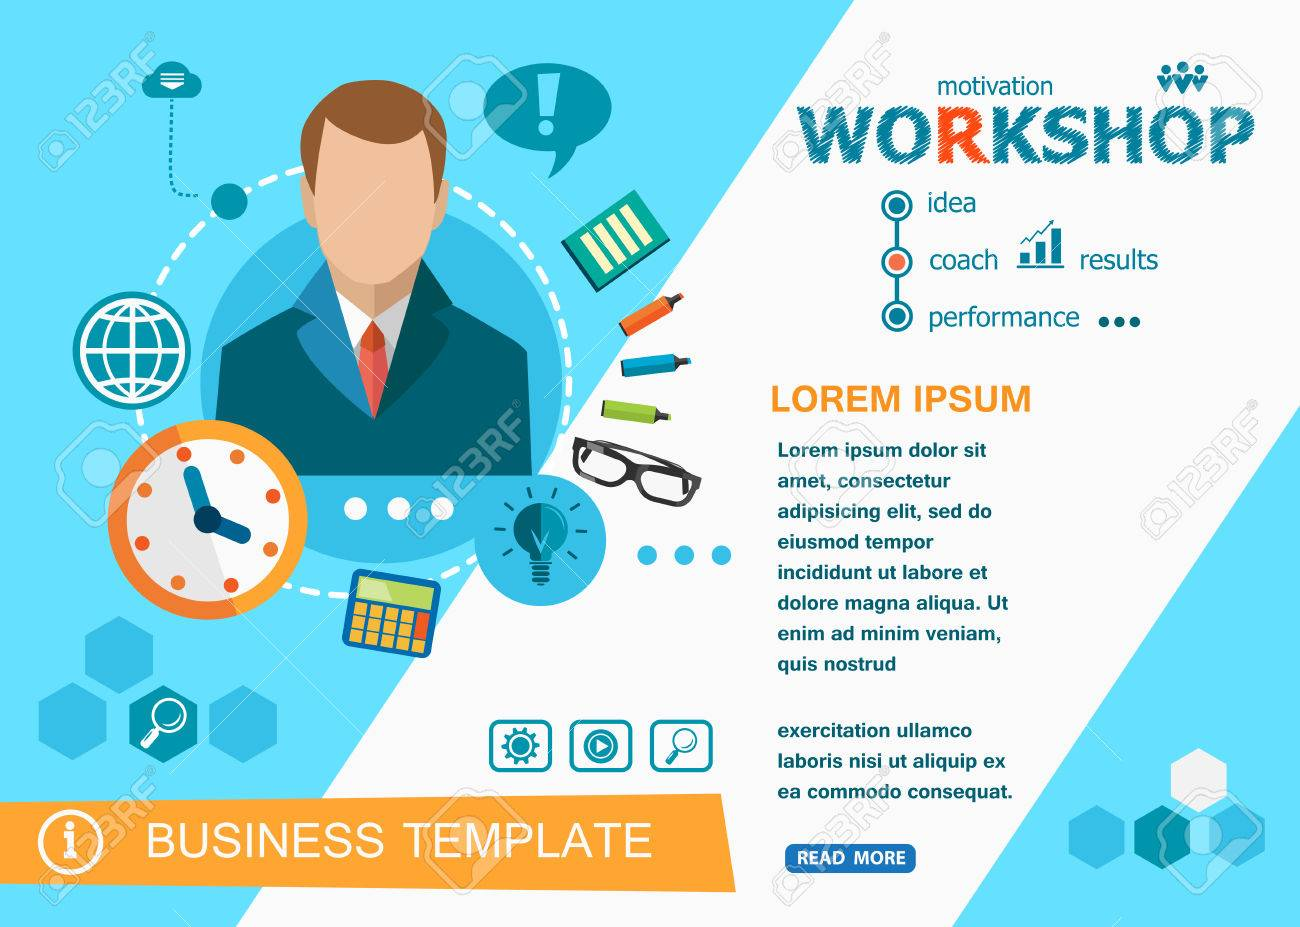 Workshop Design Concepts Of Words Learning And Training Workshop Royalty Free Cliparts Vectors And Stock Illustration Image 63731884